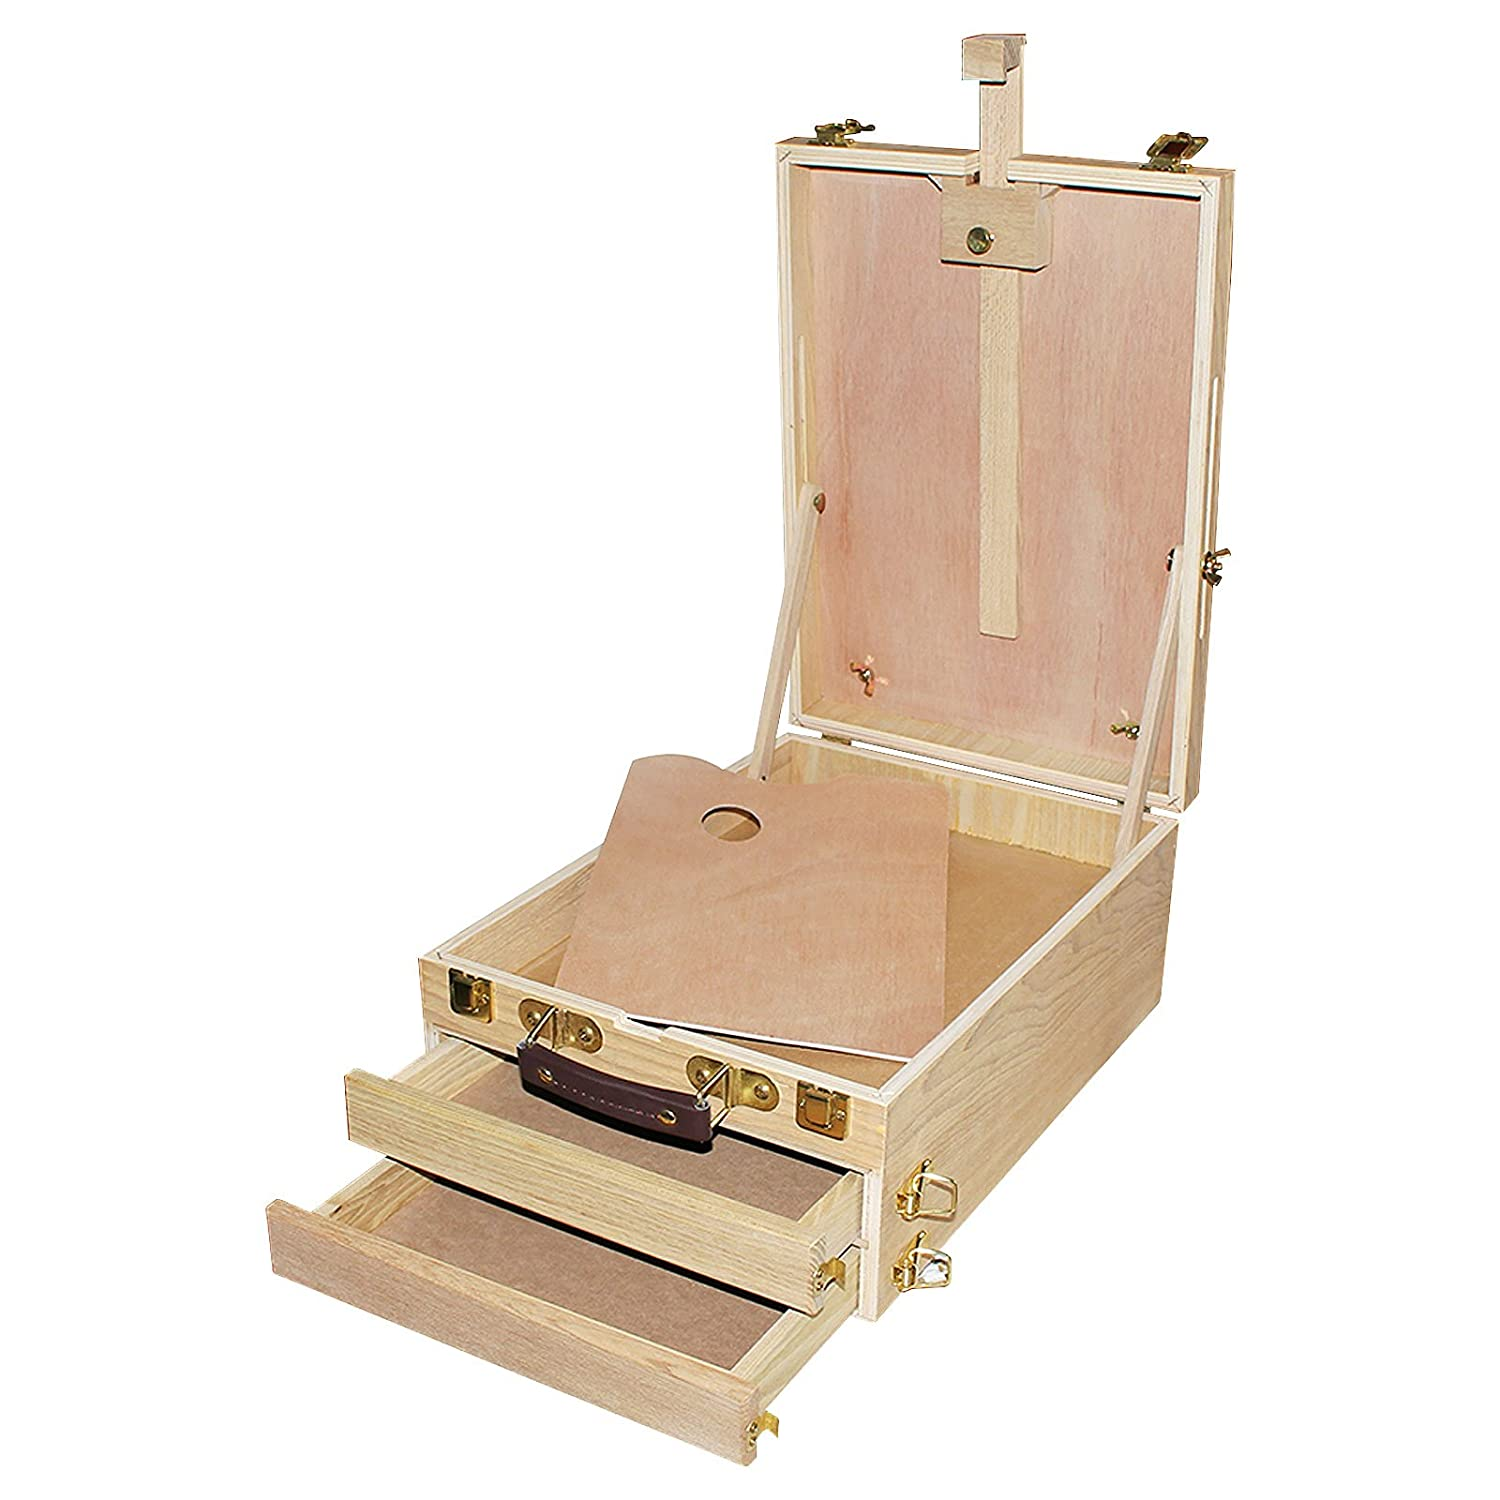 Artists Wooden Box Easel / Table Box Easel with Storage Compartment by Kurtzy - Folding Table Top Easel with 2 - Storage Compartment for Drawing Painting Table Box MA-4009